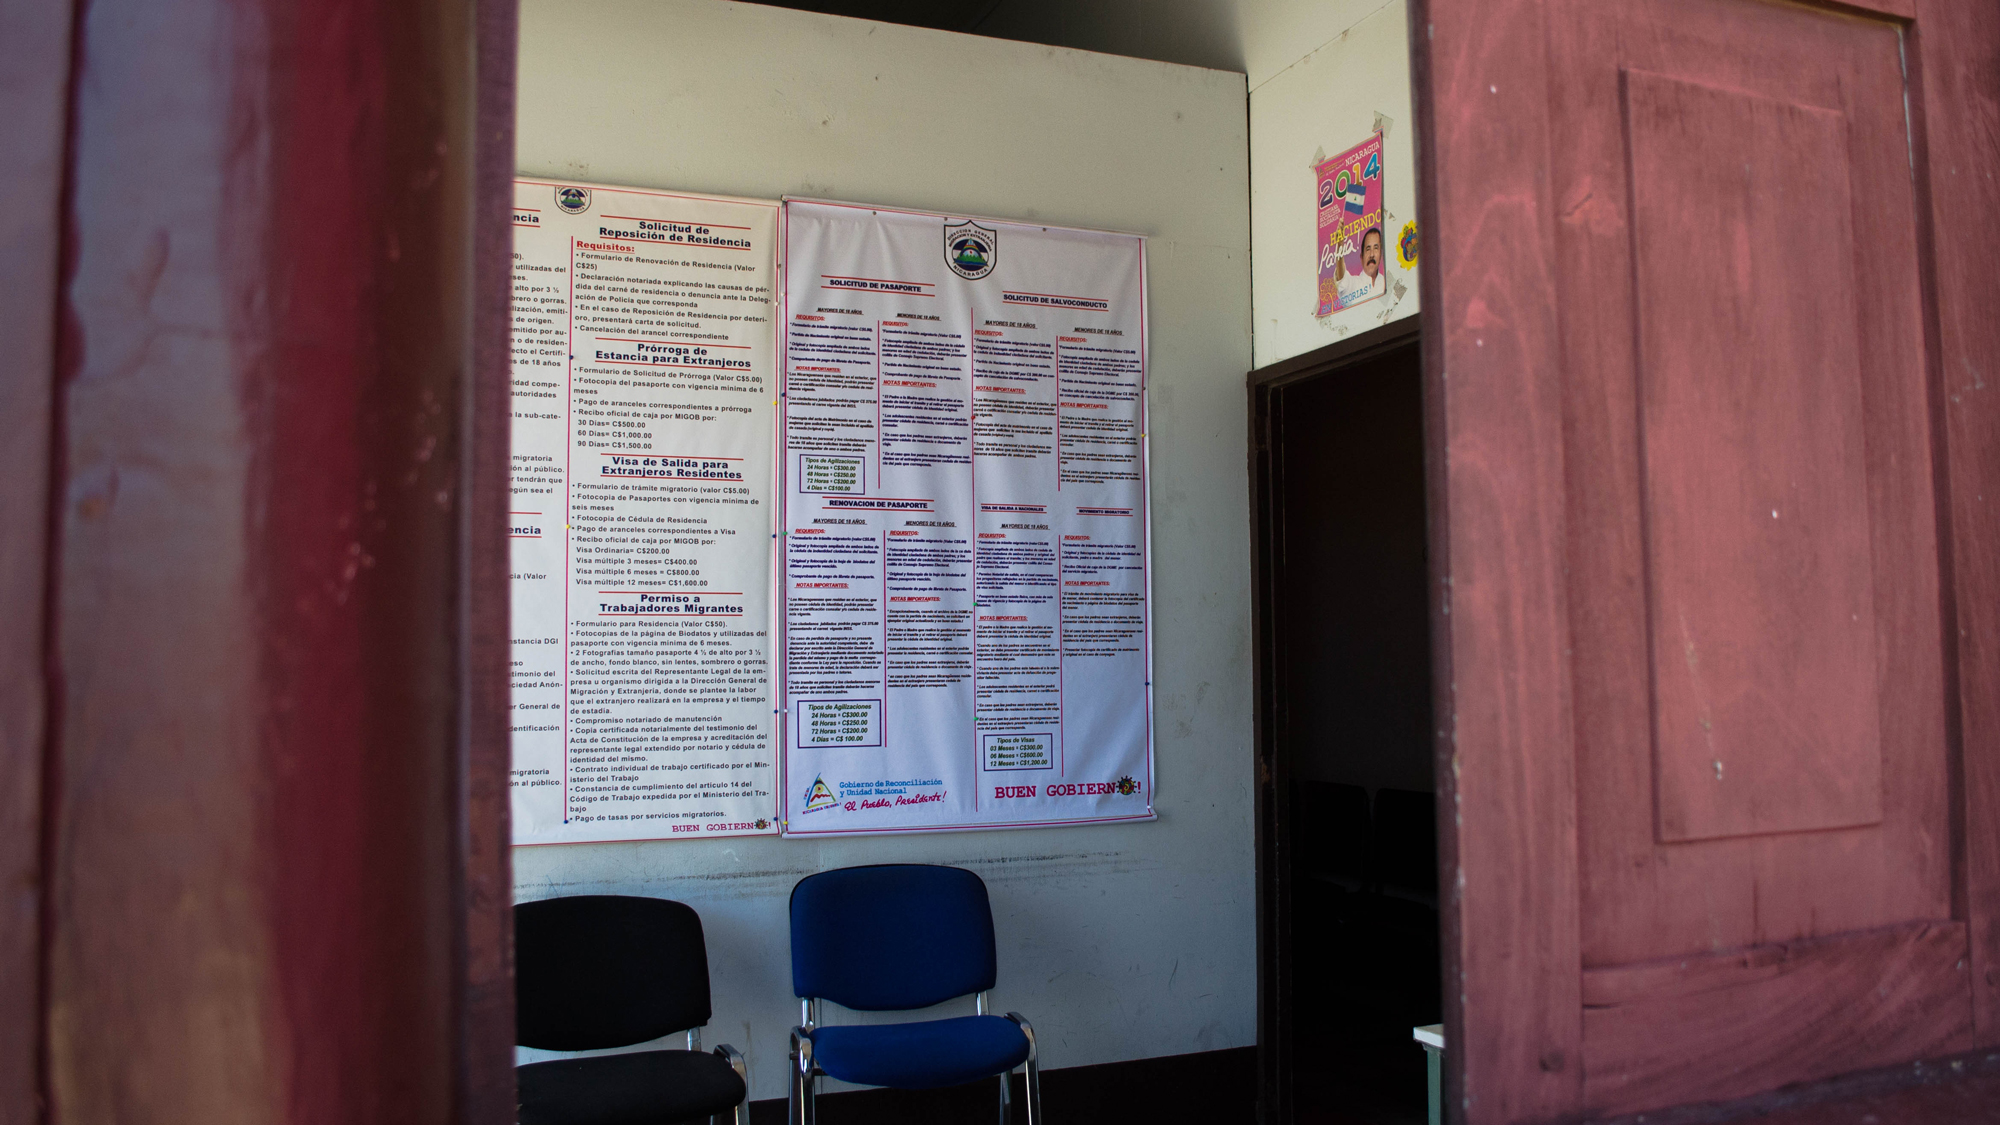 The waiting room is empty at the Directorate General of Immigration in Granada, Nicaragua. The main offices are located in Managua. (Photo by Amanda LaCasse)